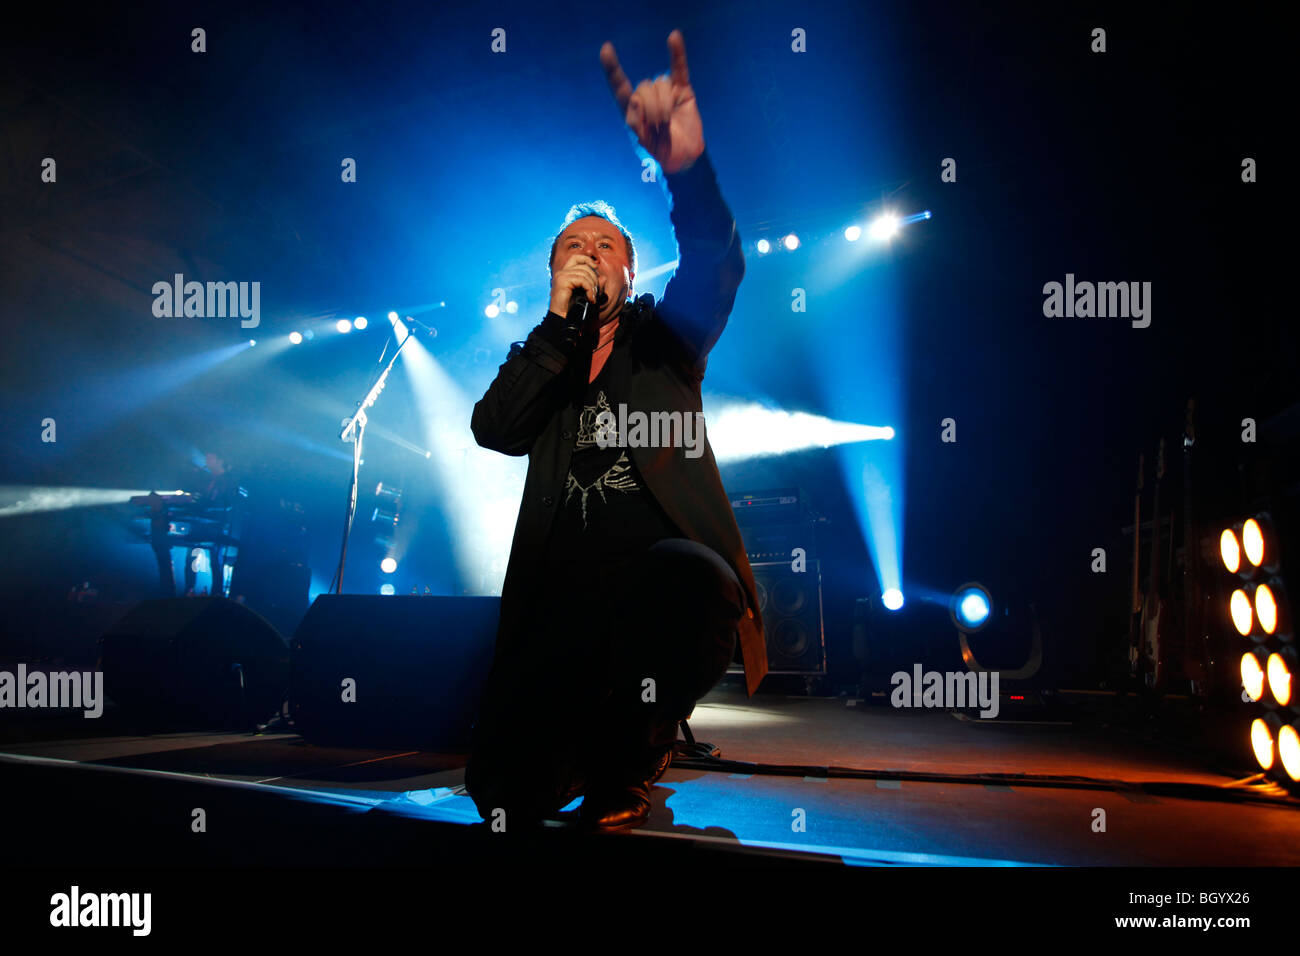 Jim Kerr, singer of the 1980's Scottish band, Simple Minds, performs along with the band in Banja Luka, on November - Stock Image